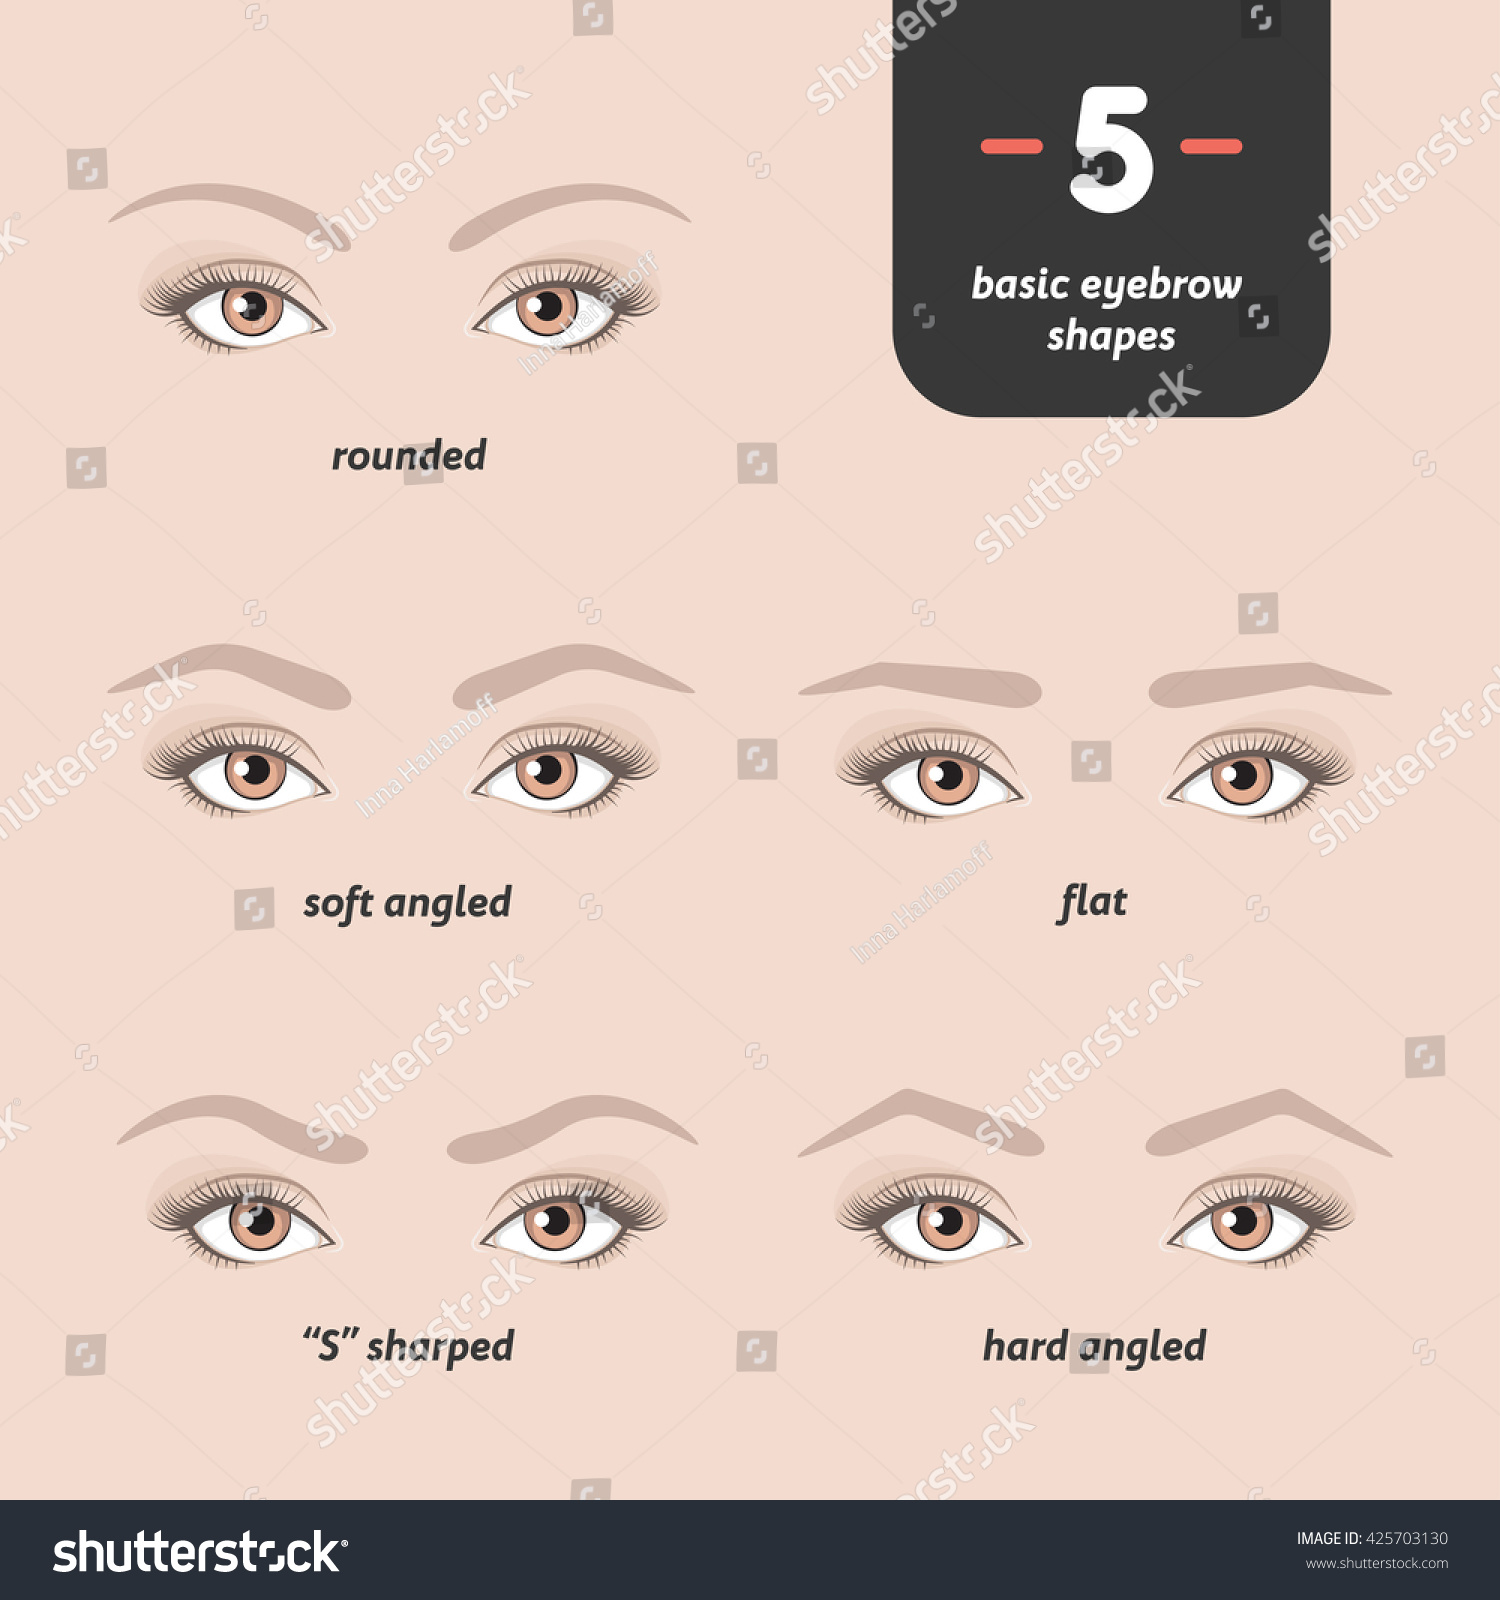 5 Basic Eyebrow Shapes Various Types Stock Vector Royalty Free